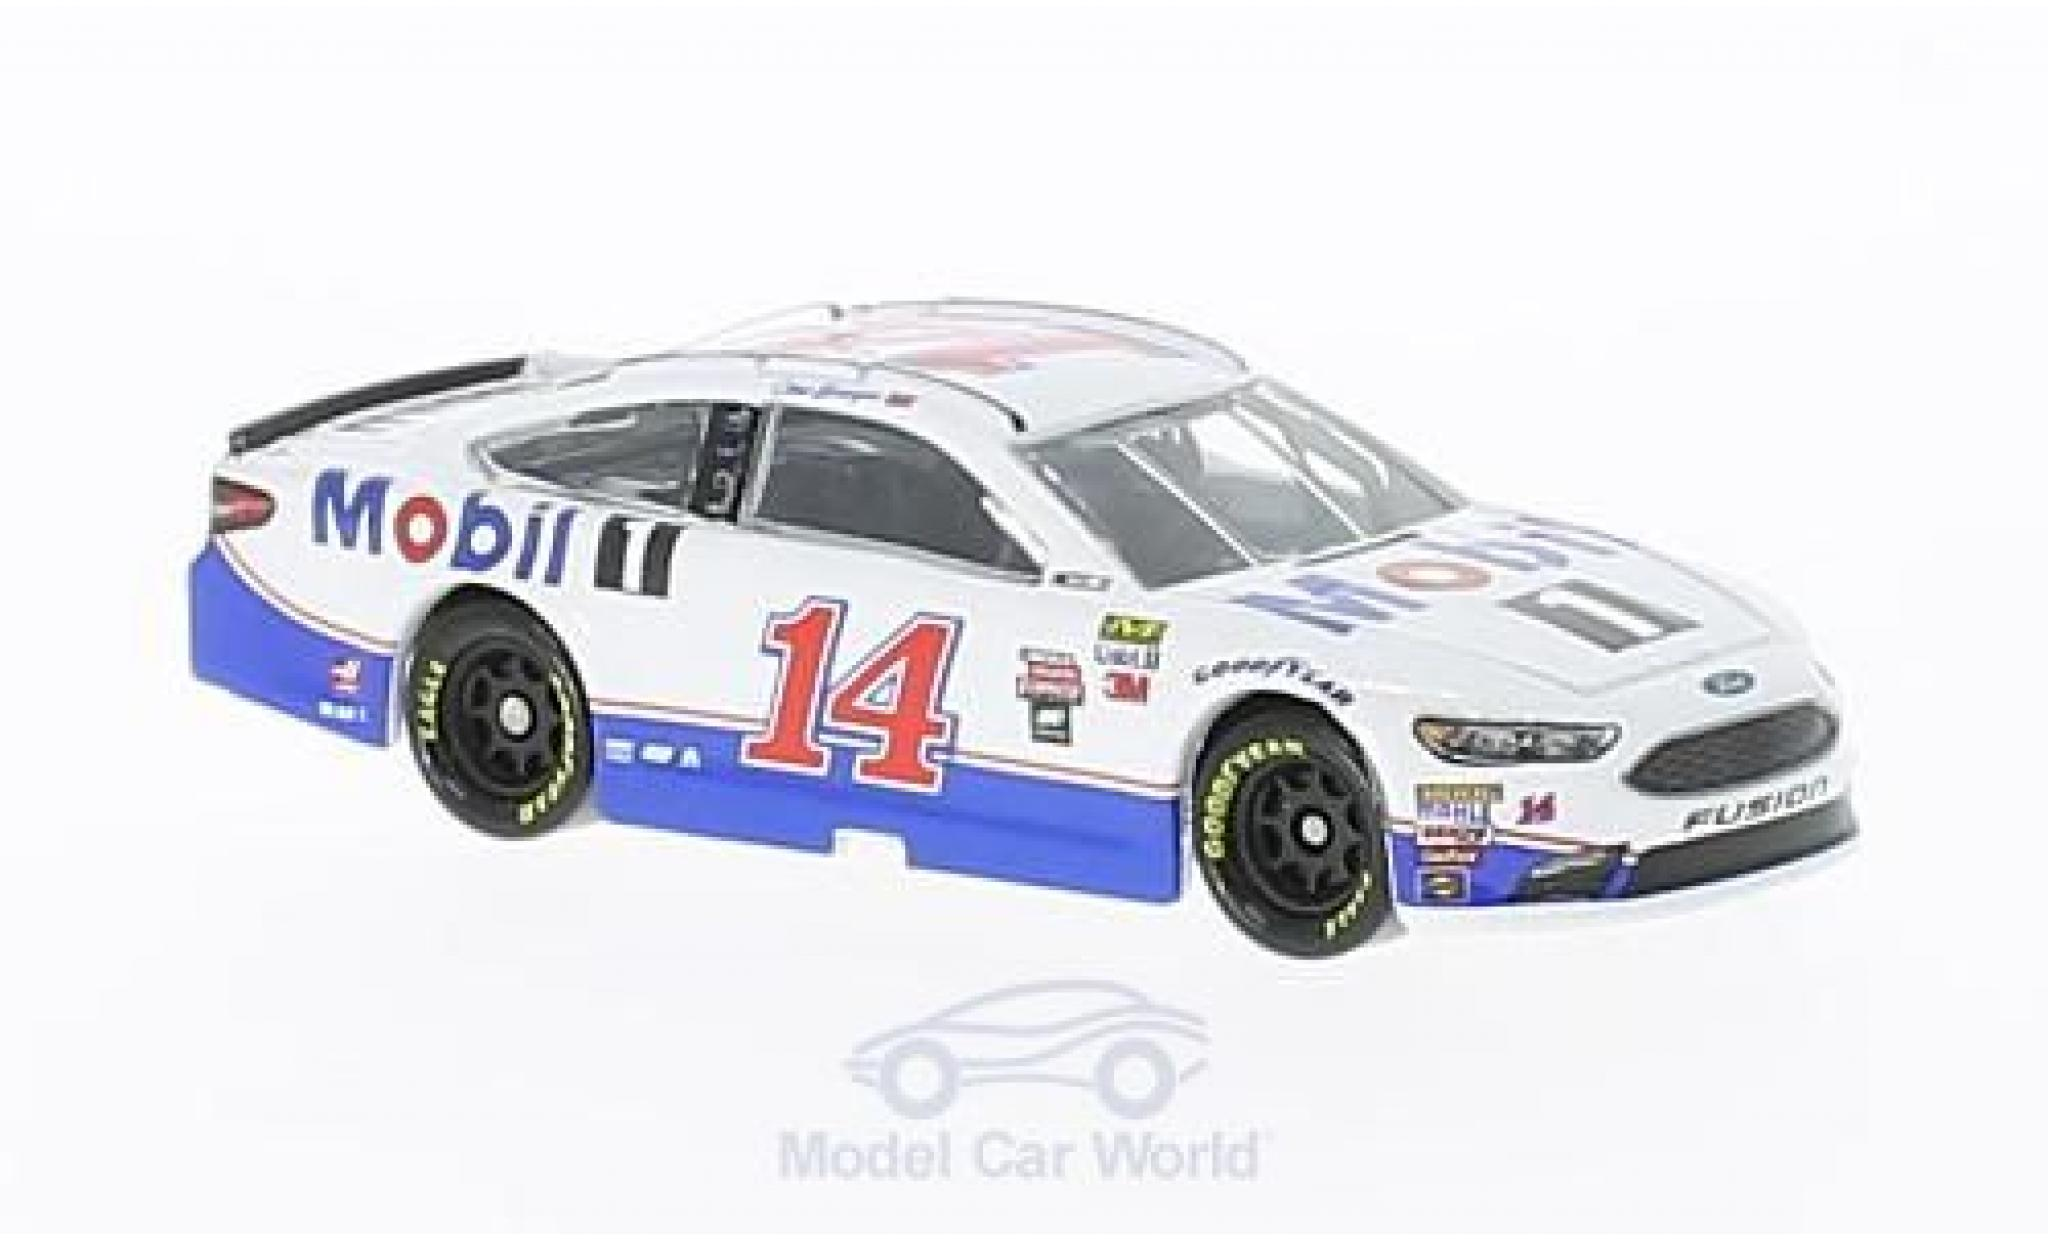 Ford Fusion 1/64 Lionel Racing No.14 Stewart-Haas Racing Mobil 1 Nascar 2017 C.Bowyer